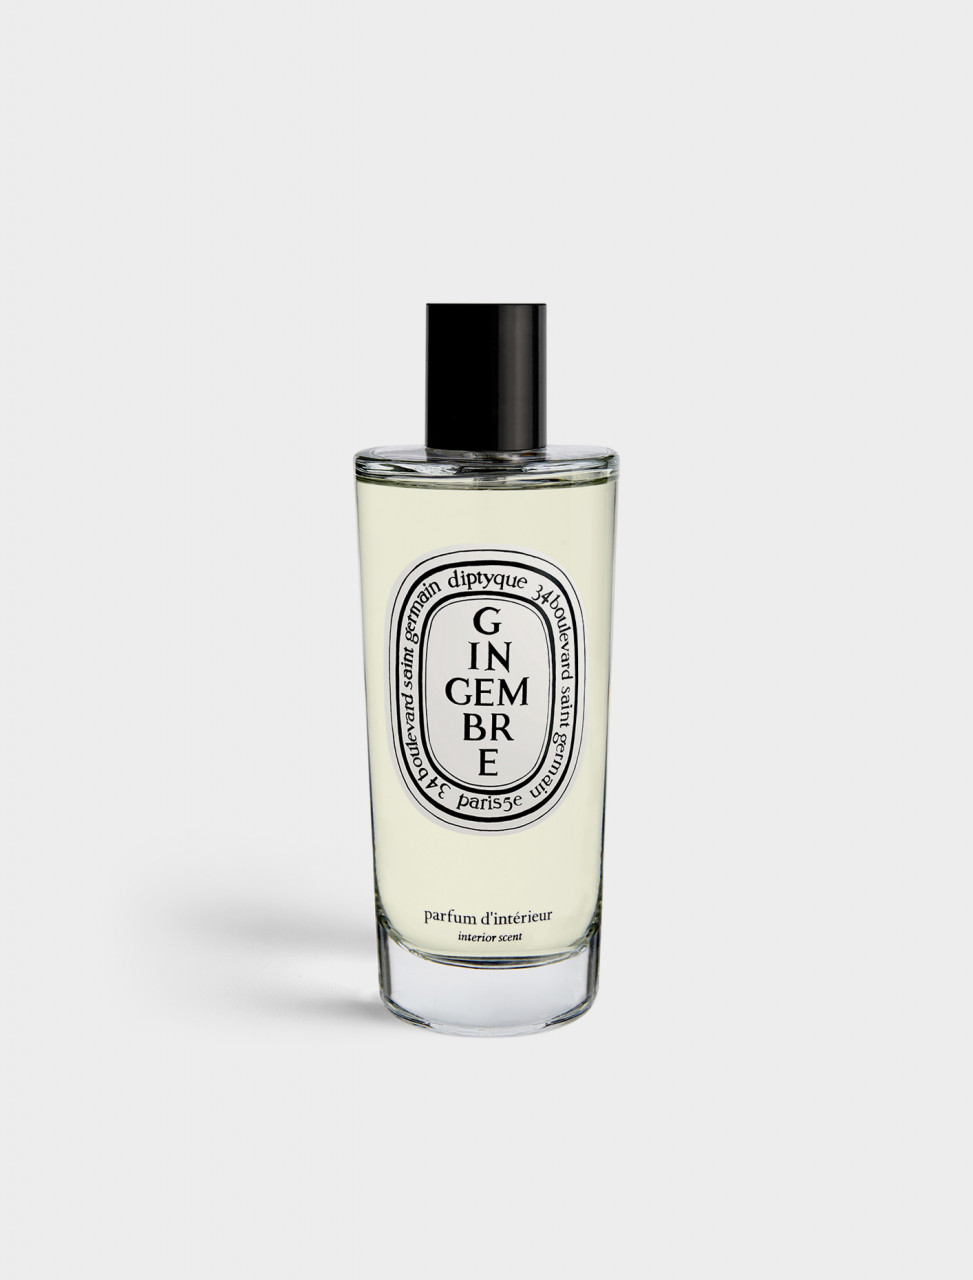 337-VGGV1 DIPTYQUE GINGEMBRE ROOM SPRAY